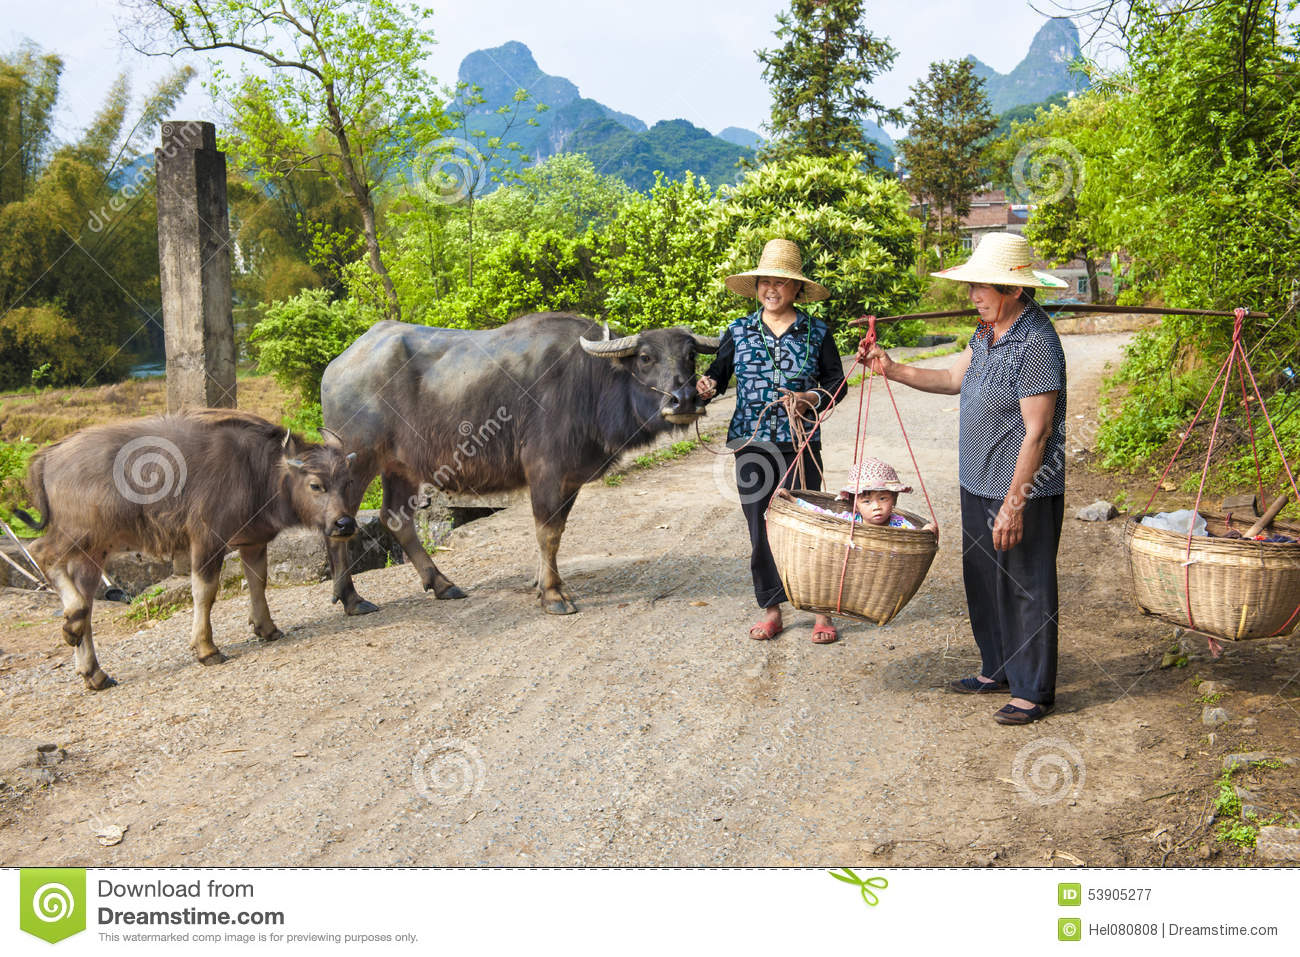 Chinese farmwomen with buffaloes and baby in basket